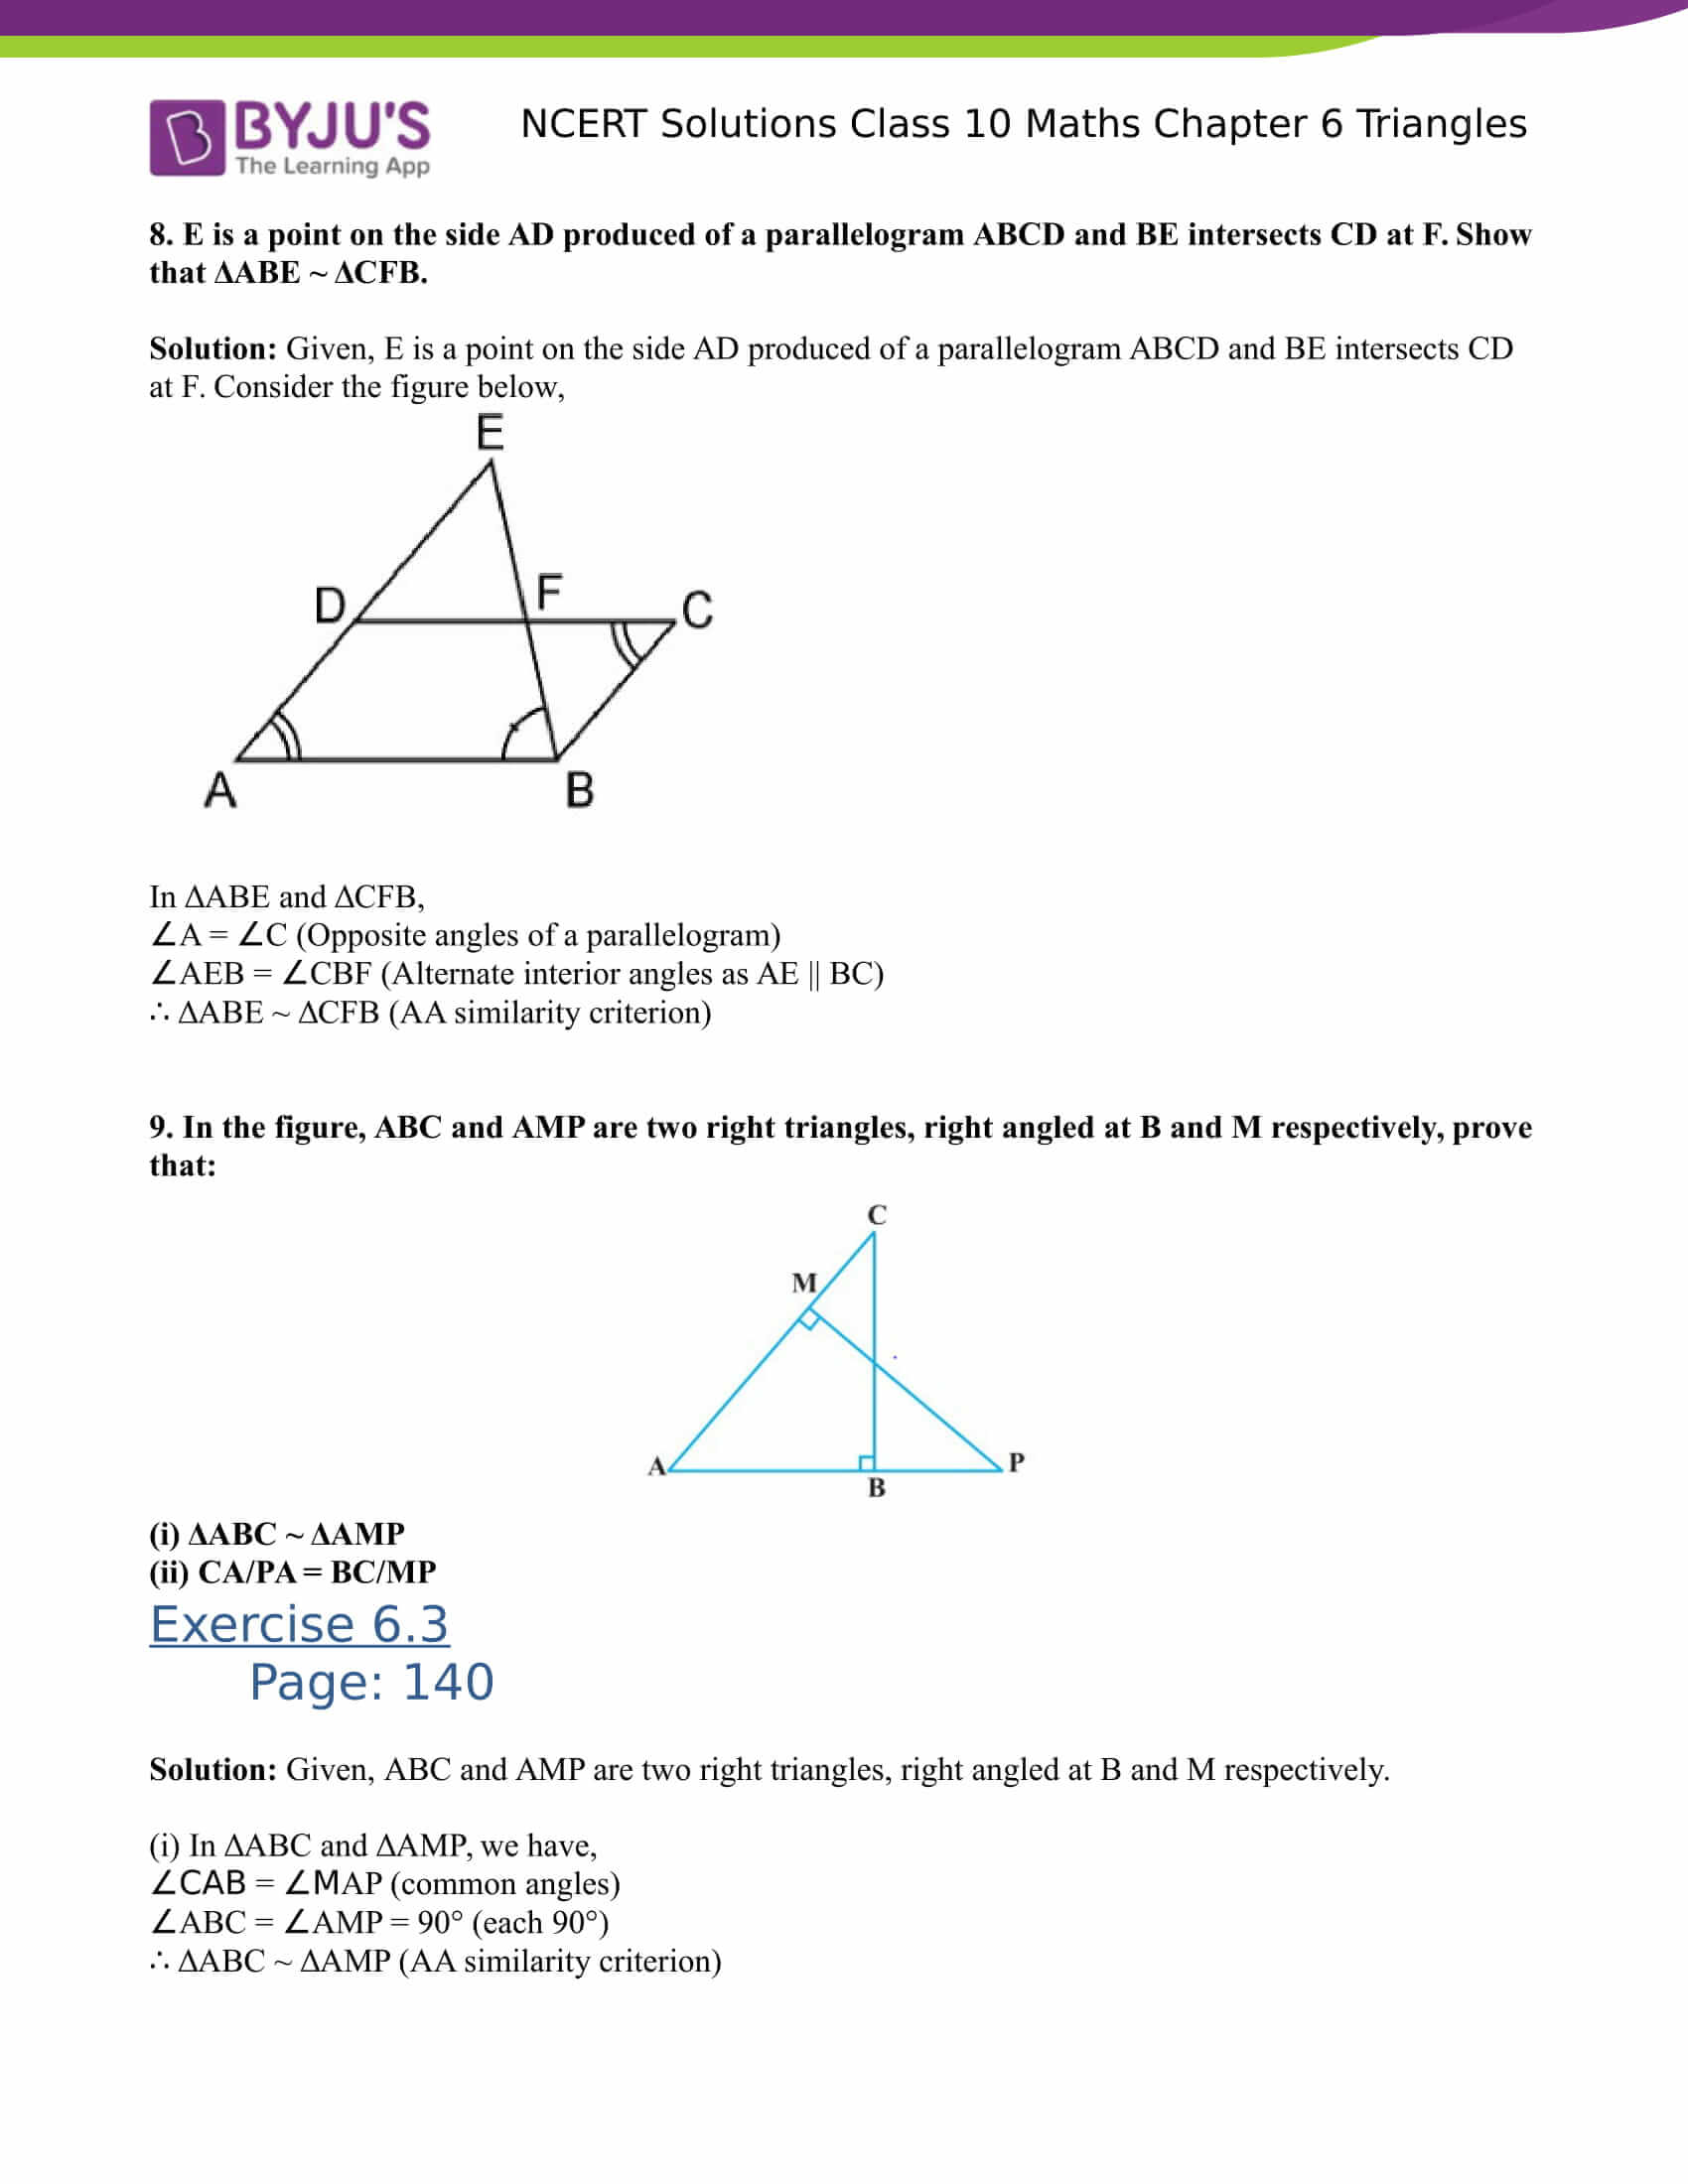 NCERT Solutions for class 10 Maths Chapter 6 Triangles Part 19